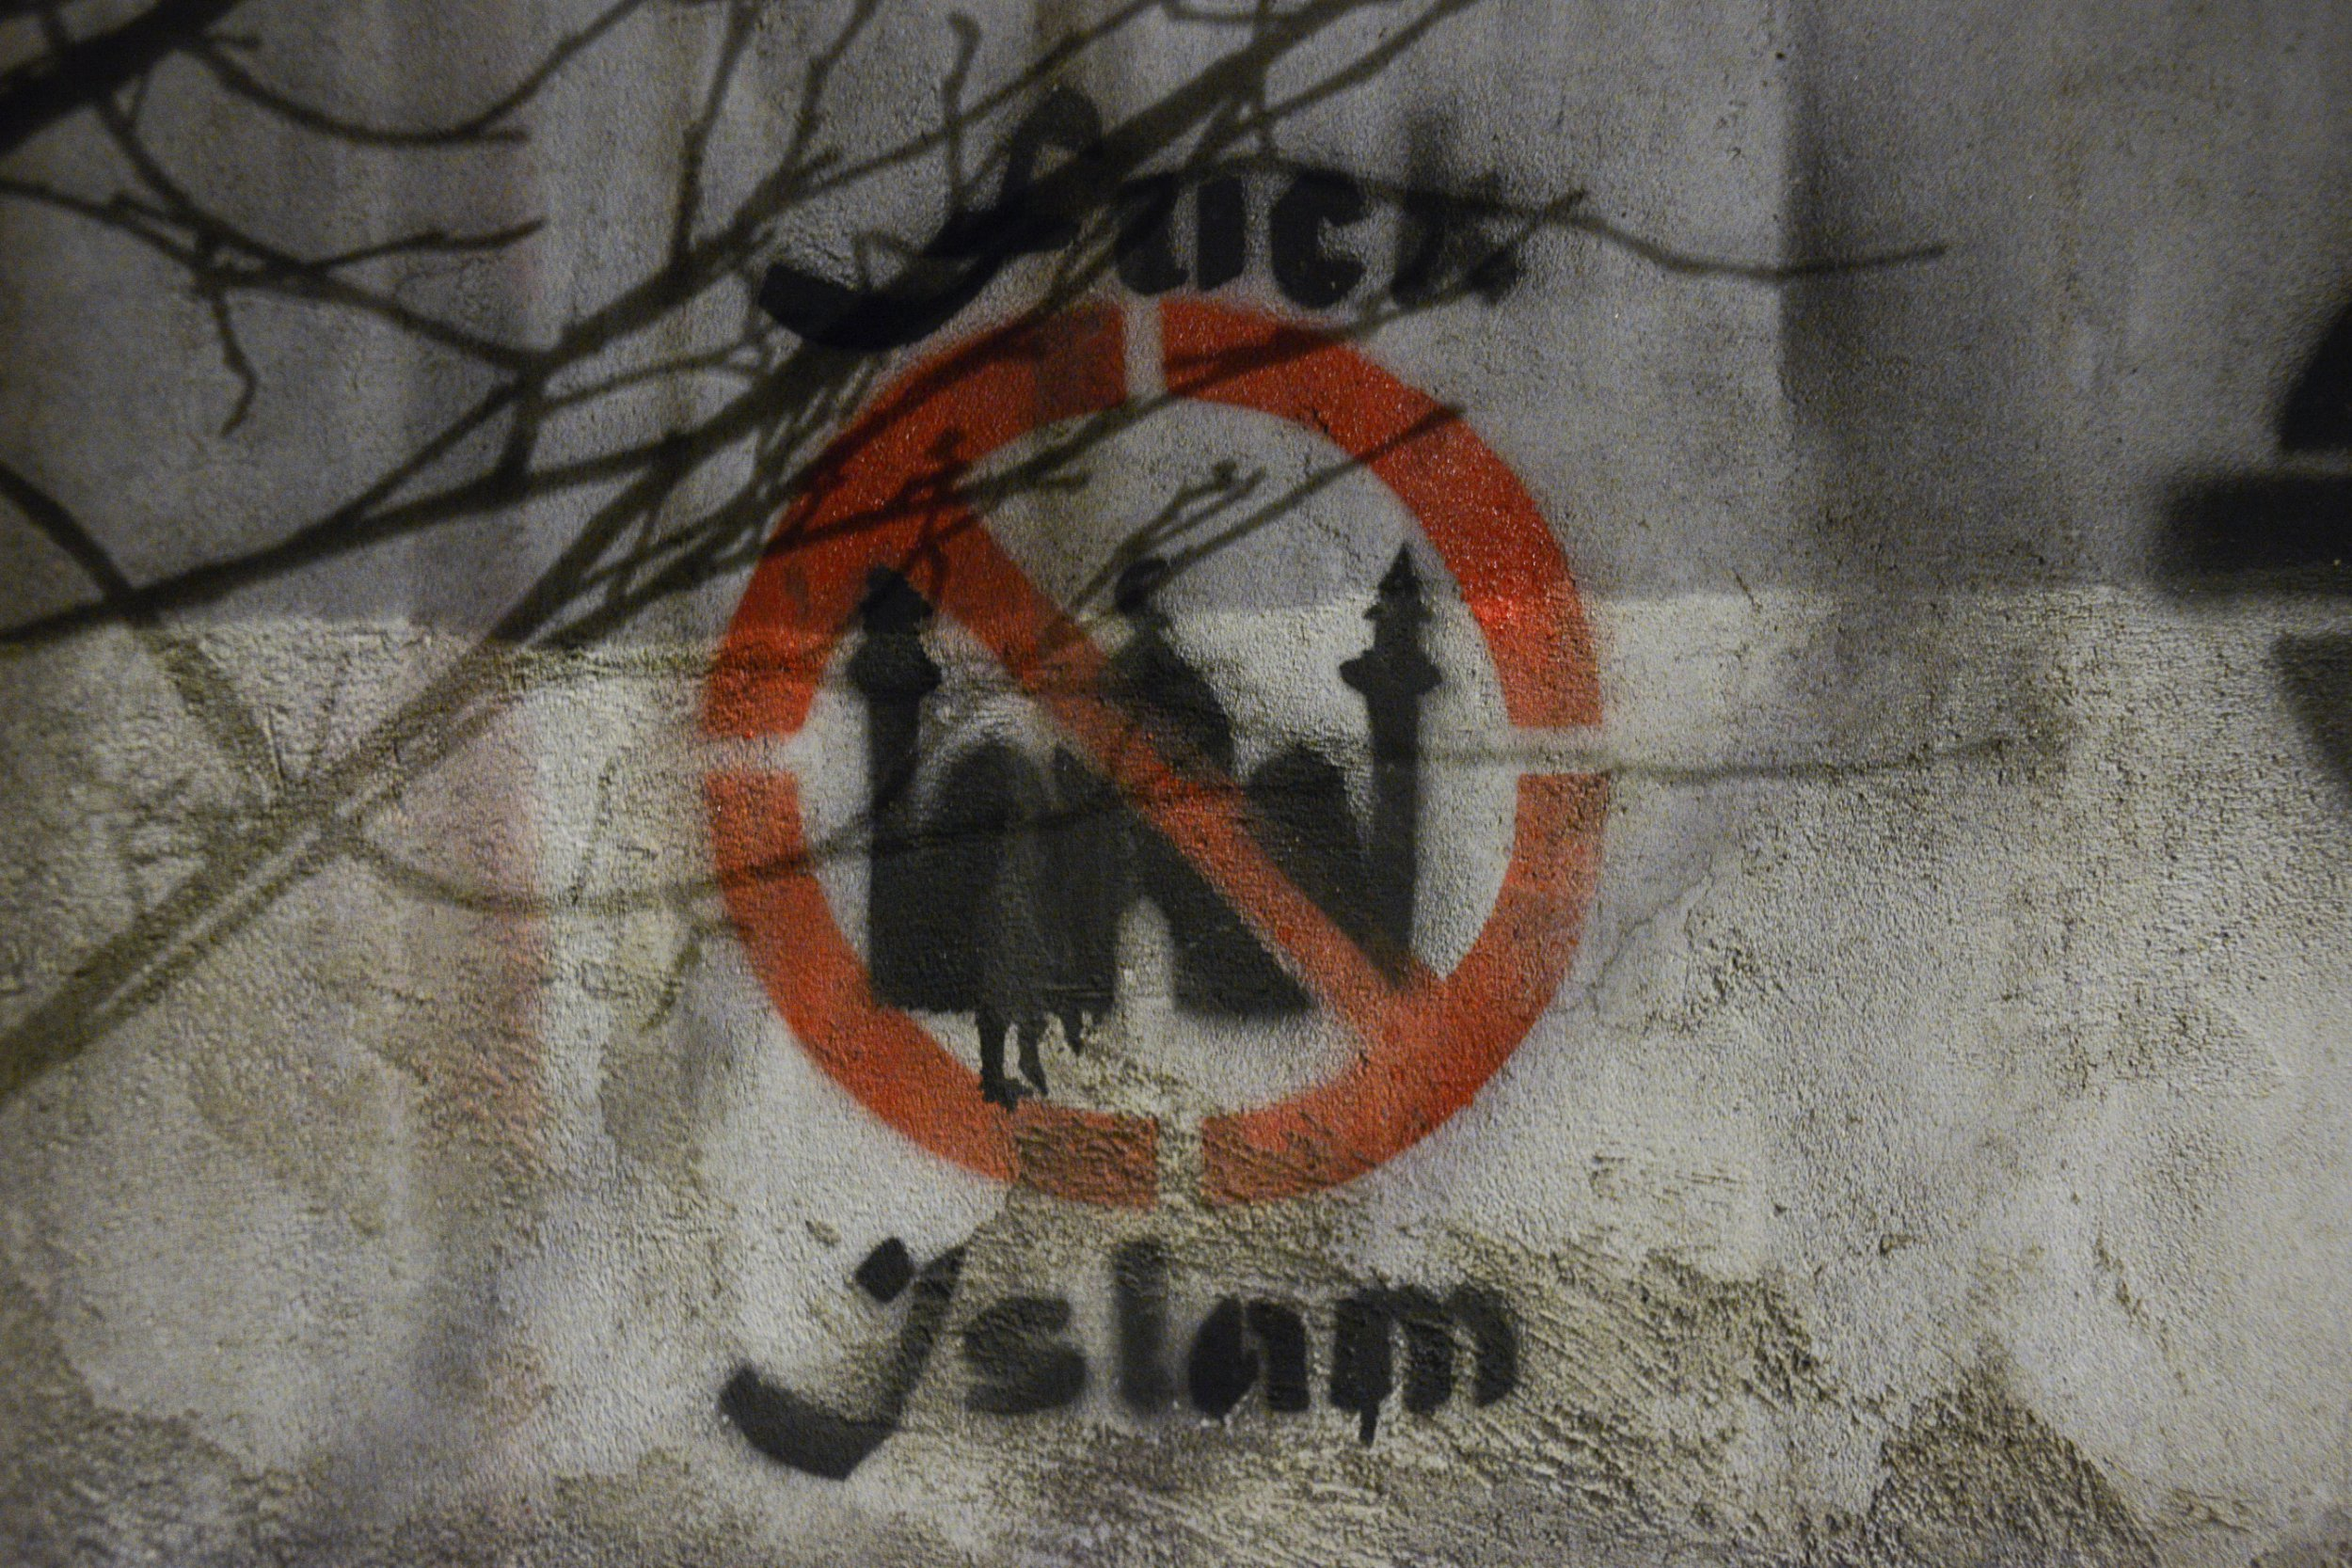 DO NOT USE - USE MUZZ VERSION An anti-Islam slogan is seen painted on a wall near the National Stadium in Warsaw, Poland on February 20, 2018. (Photo by Jaap Arriens/NurPhoto via Getty Images)